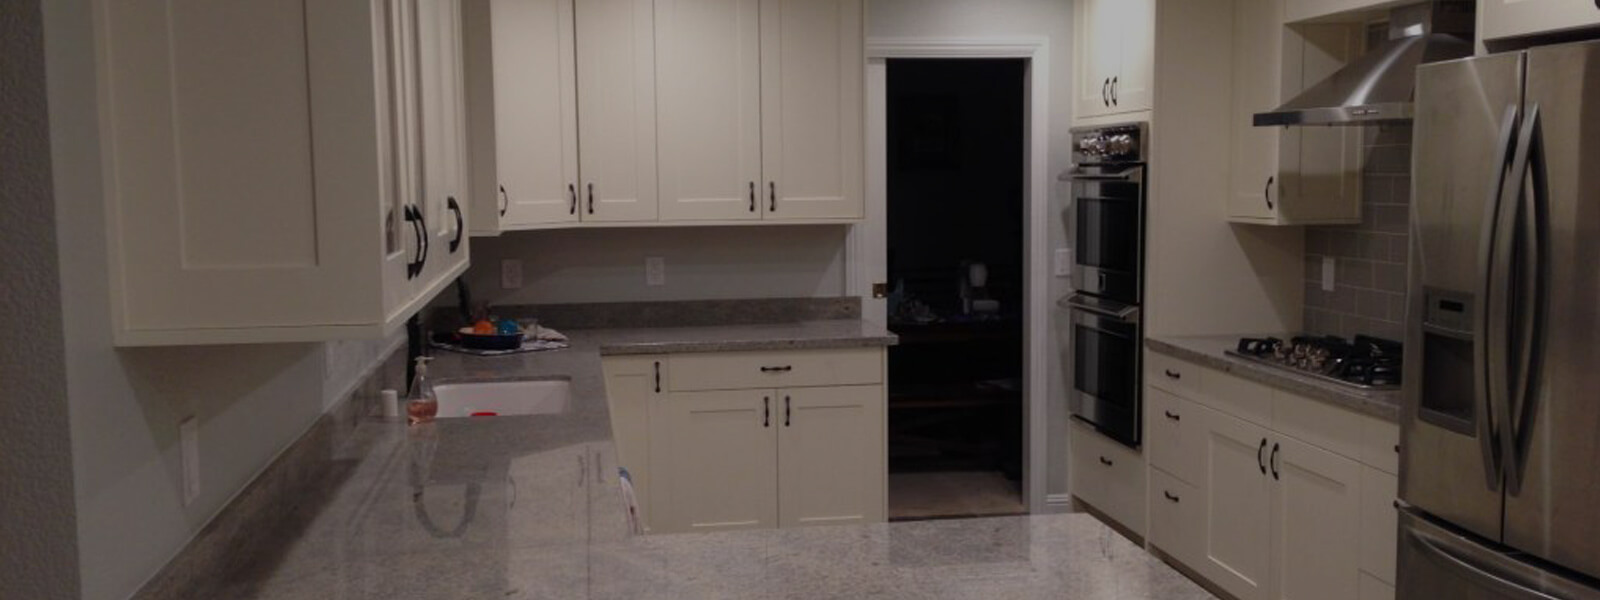 Best Kitchen And Bathroom Remodeling Contractors Near Me Residential Remodeling Company Pacific Coast General Construction Inc